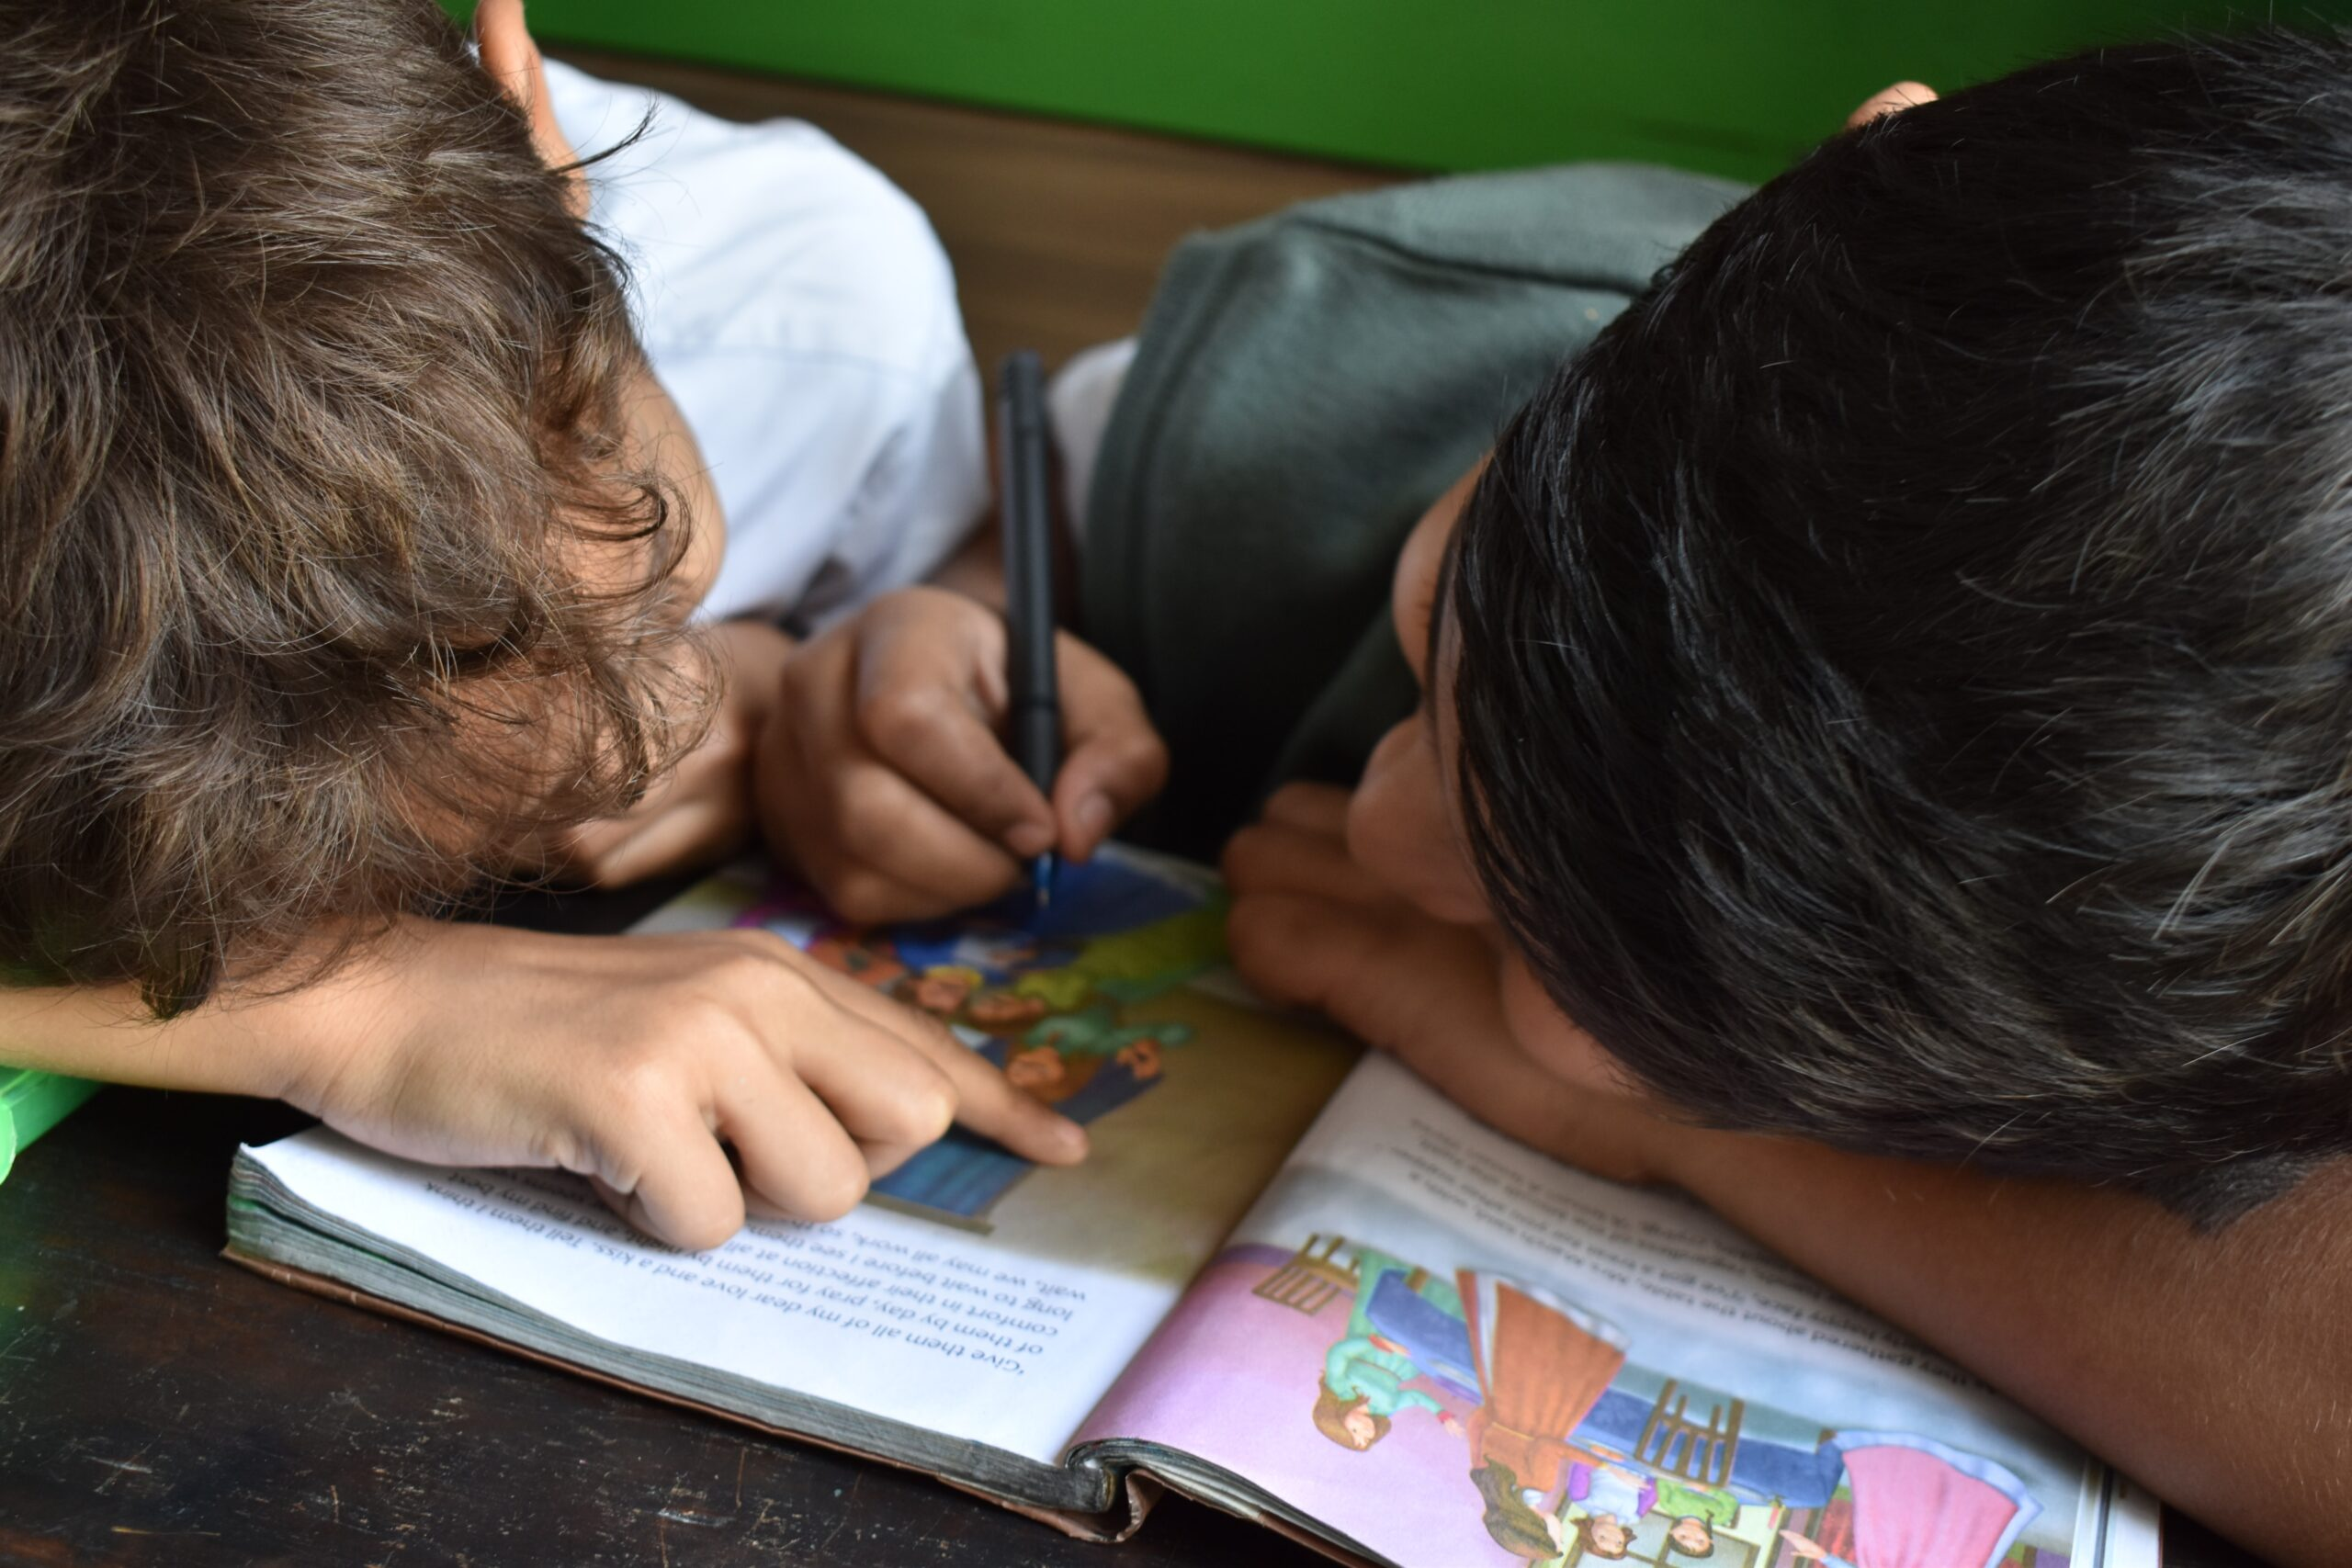 2 children writing in a book, learning together